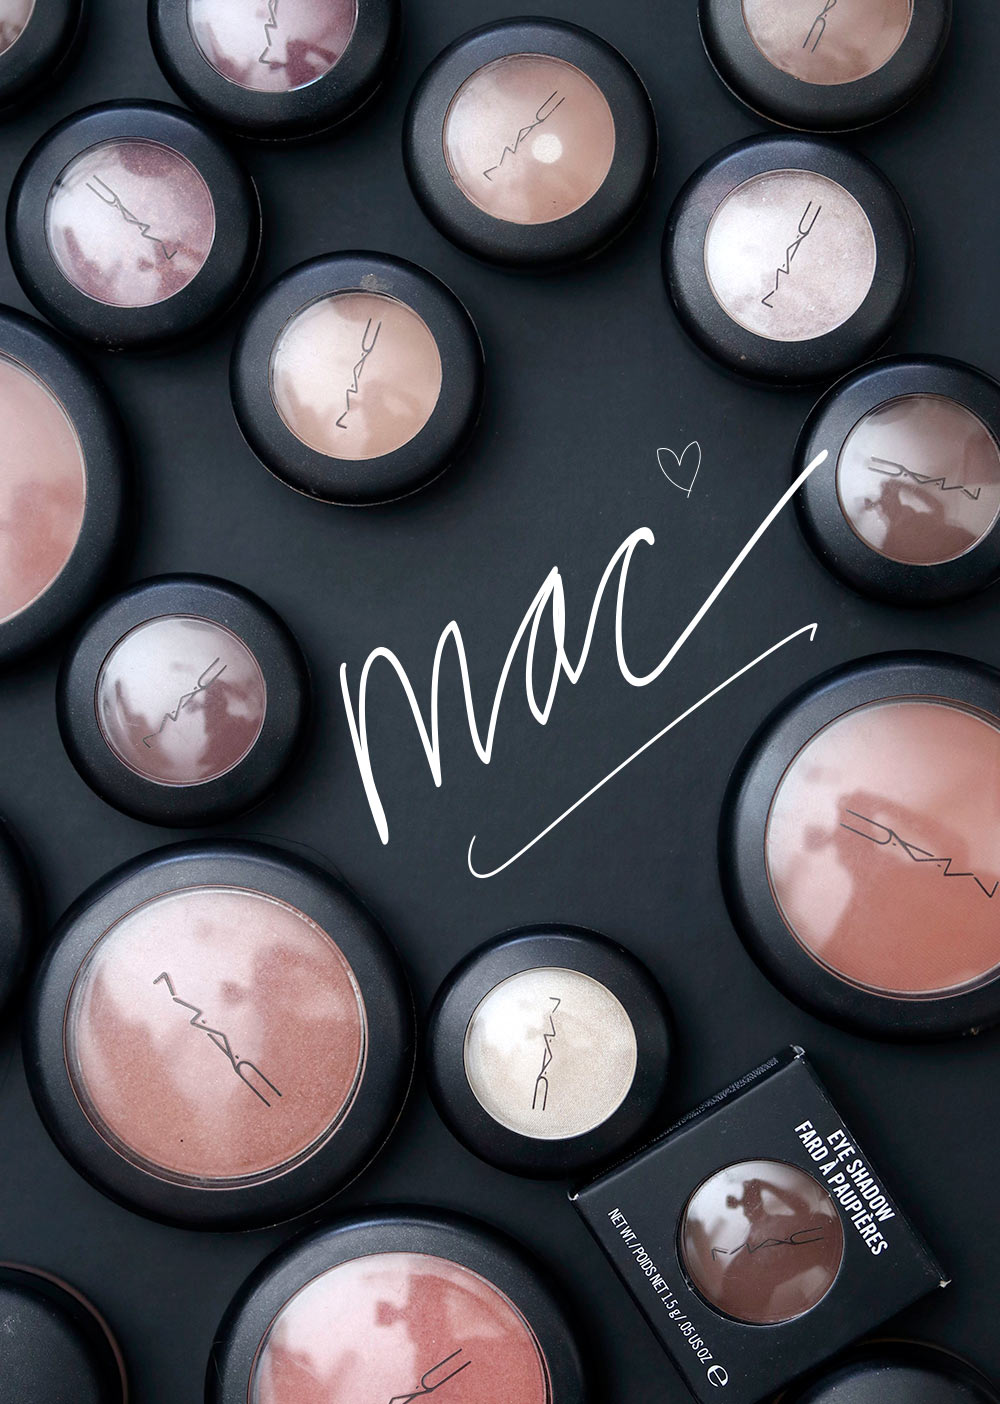 abd76fc100e Up to 50% Off MAC Cosmetics at Nordstrom Rack - Best Skin ...